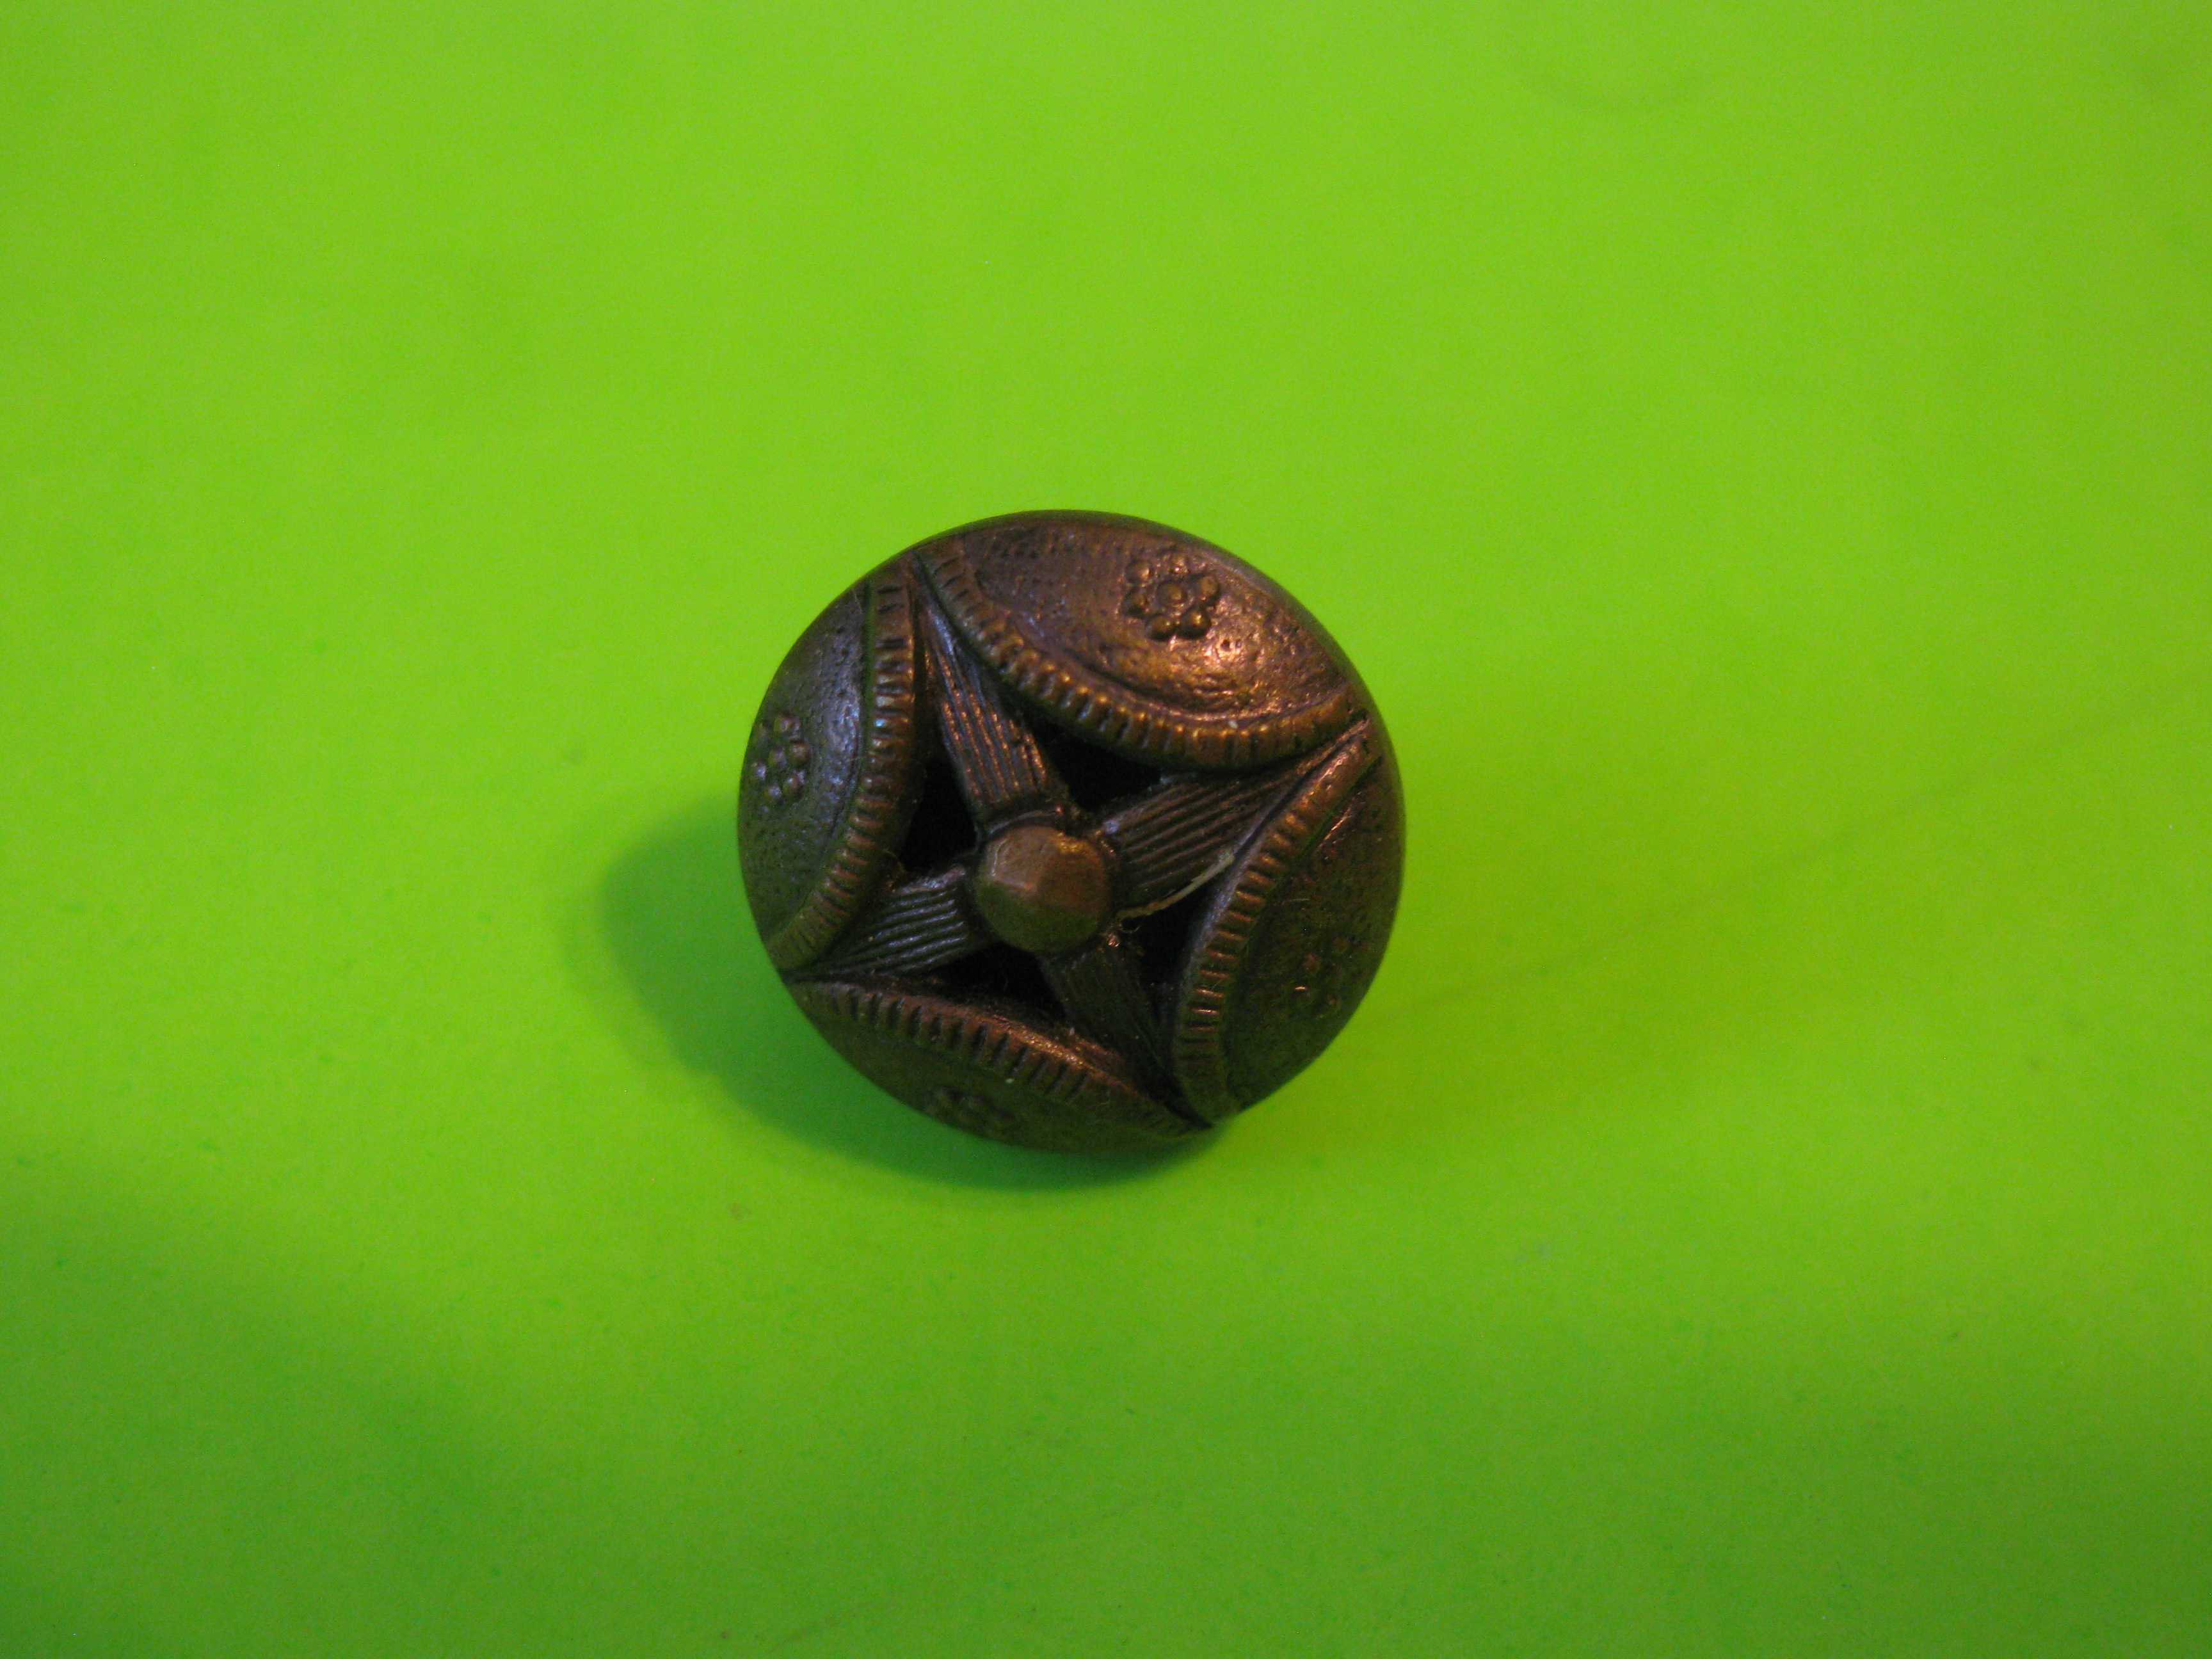 Antique Austrian Metal Button with Intricate Design with Metal Loop Shank